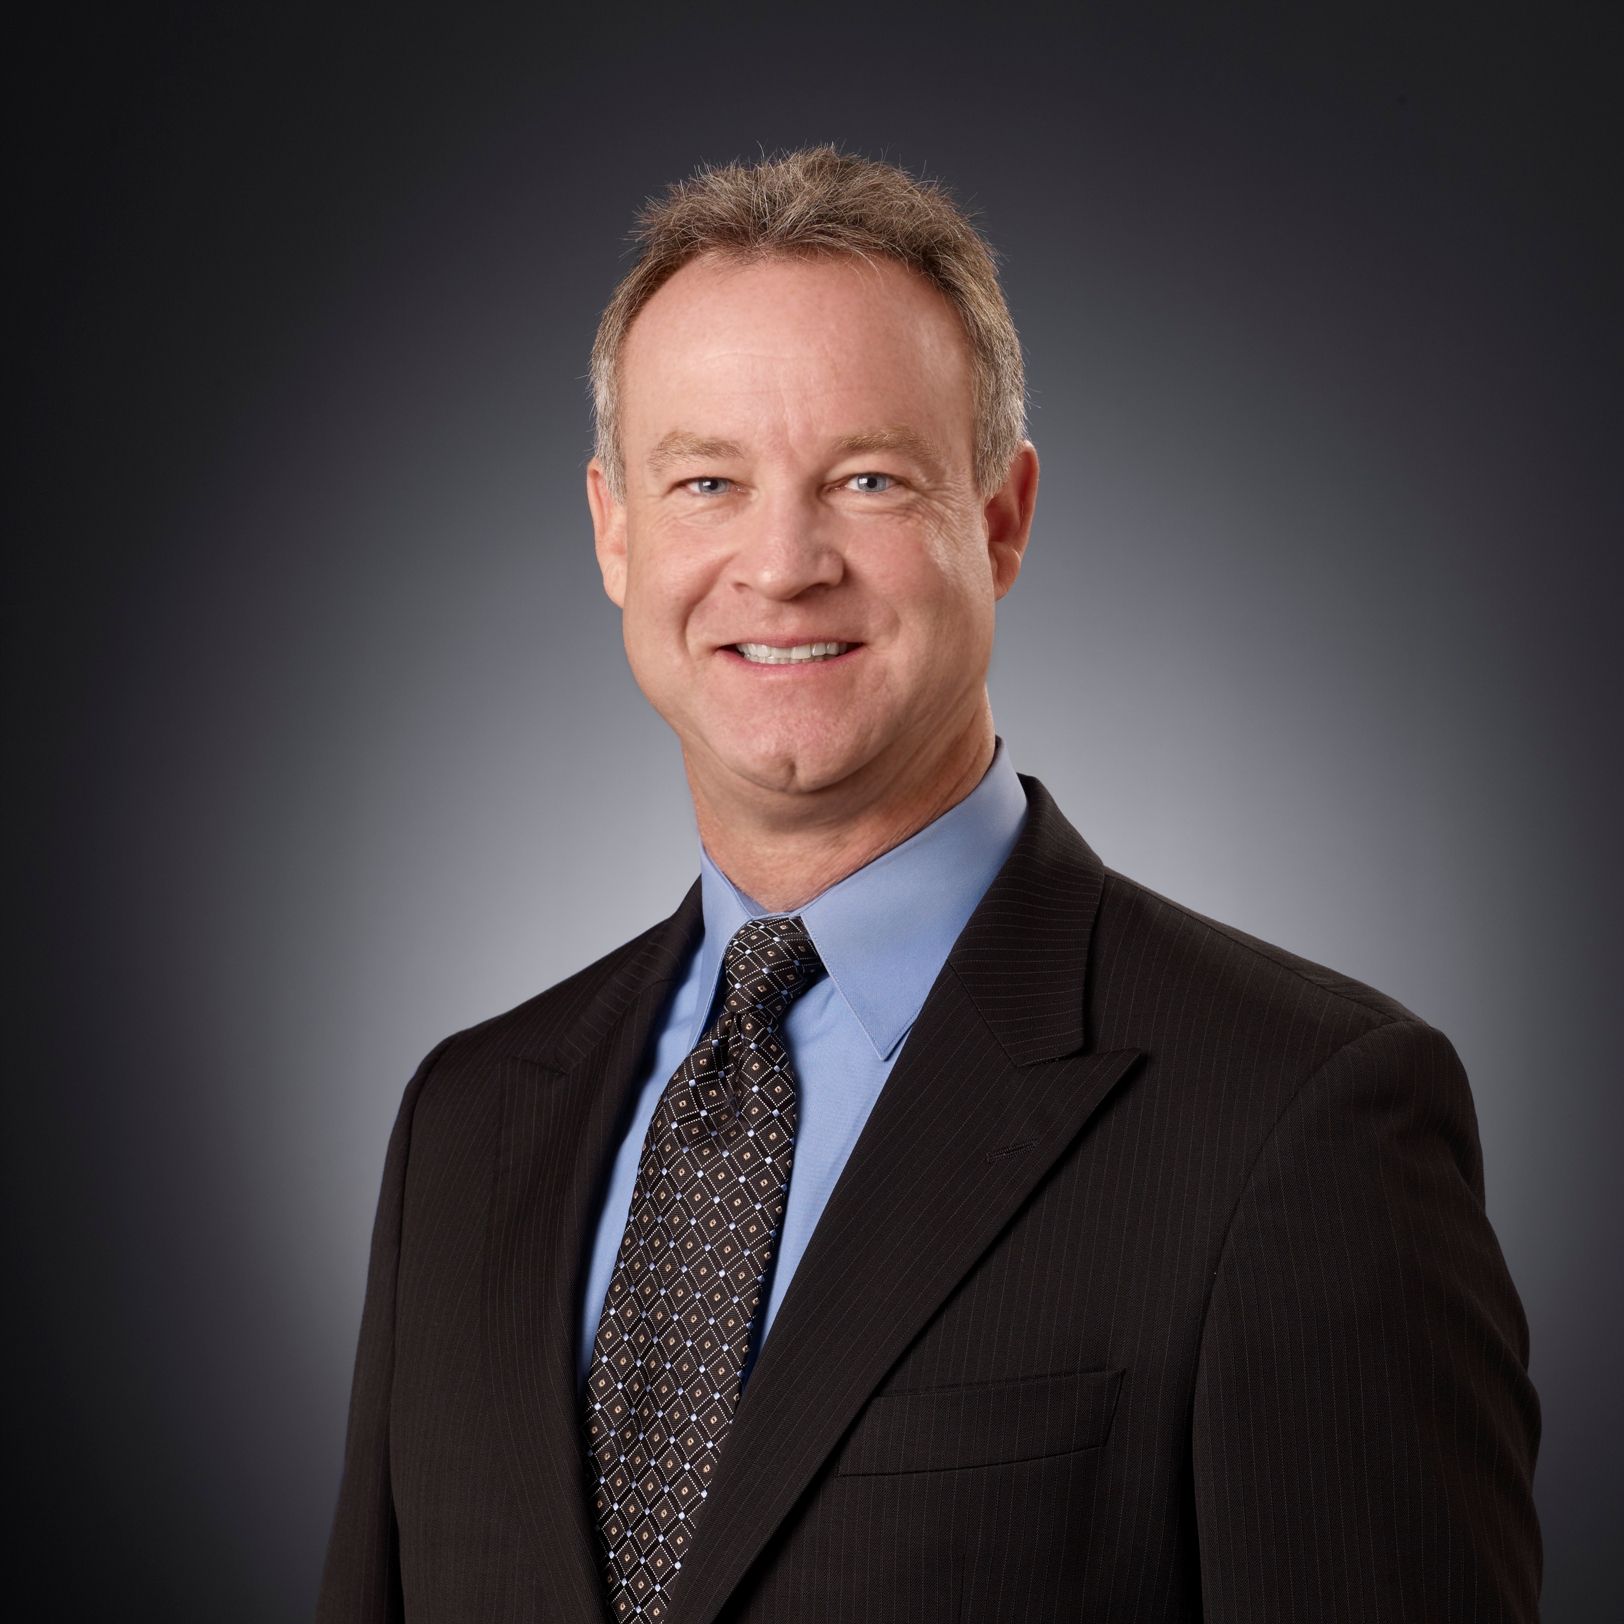 Joe Langner, EVP Midmarket Solutions for Sage North America